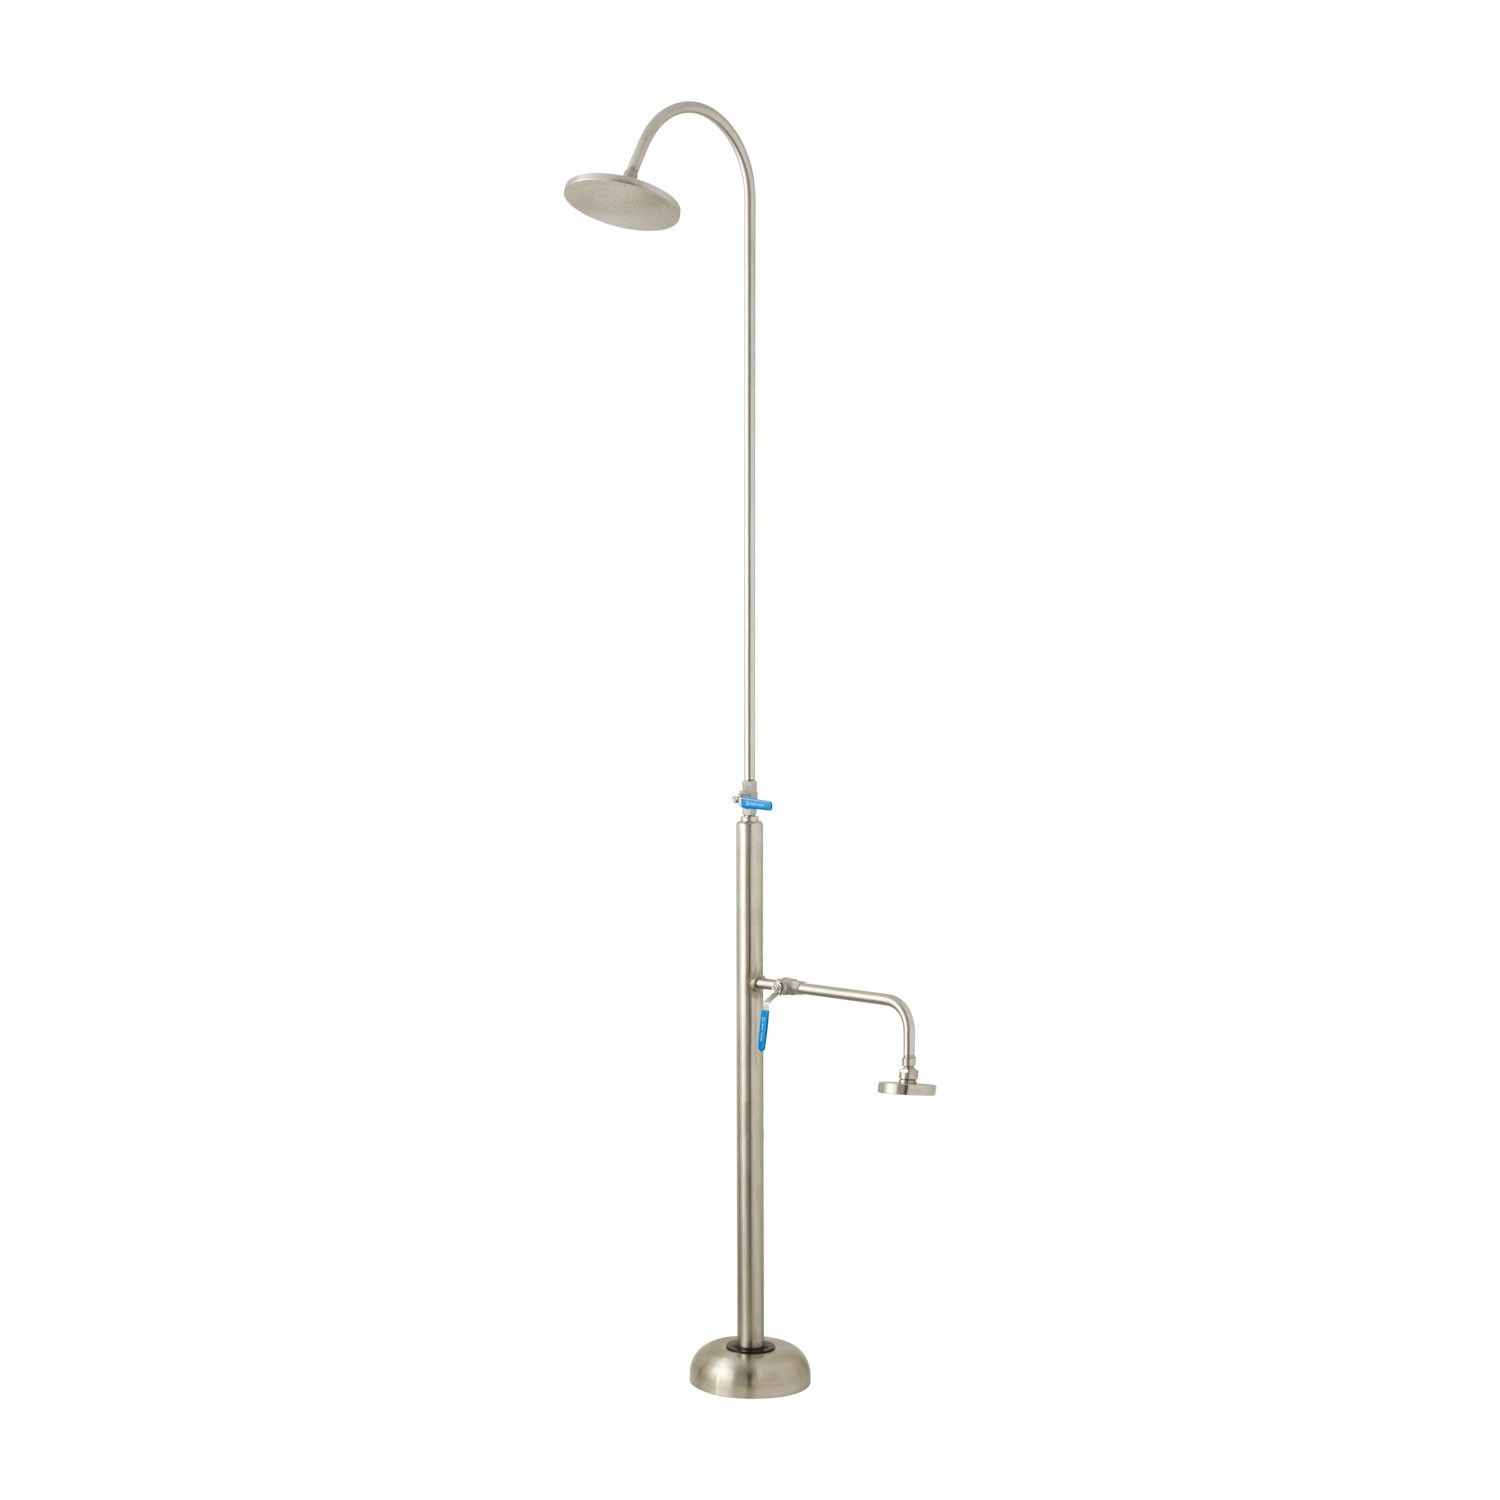 Marlin Stainless Steel Outdoor Shower with Foot Shower | Steel, Pool ...